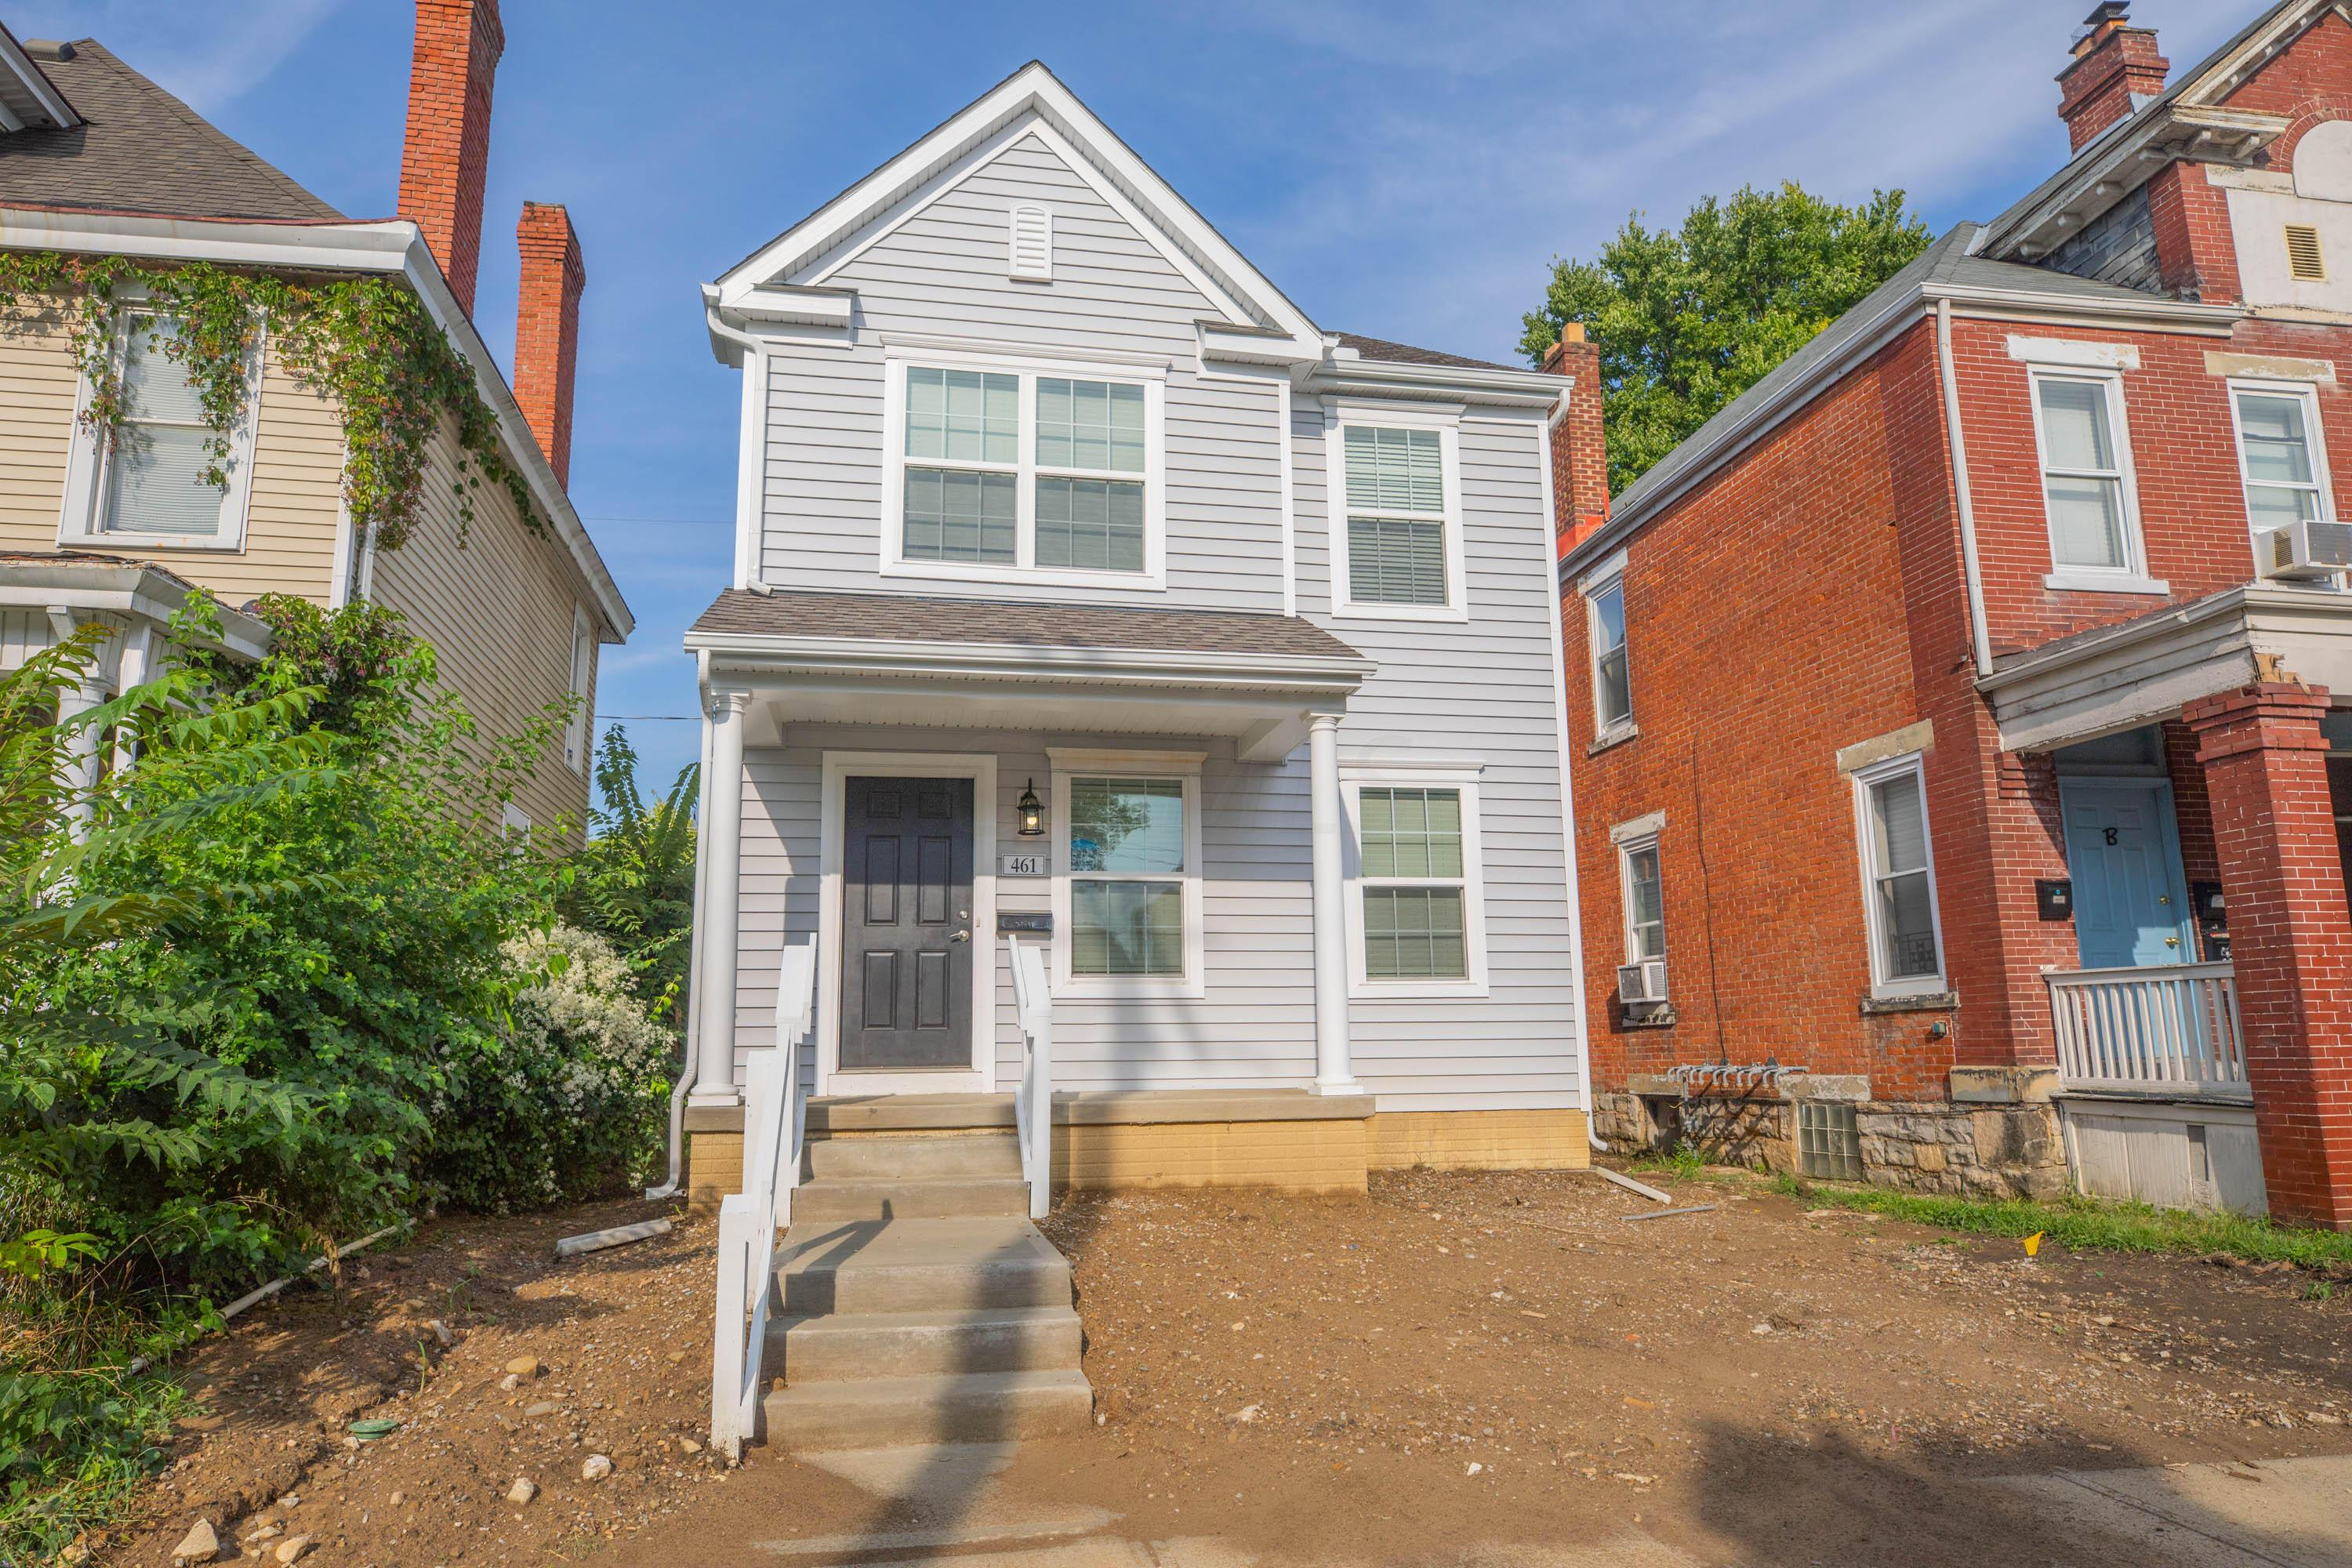 461 22nd Street, Columbus, Ohio 43205, 3 Bedrooms Bedrooms, ,3 BathroomsBathrooms,Residential,For Sale,22nd,220019184